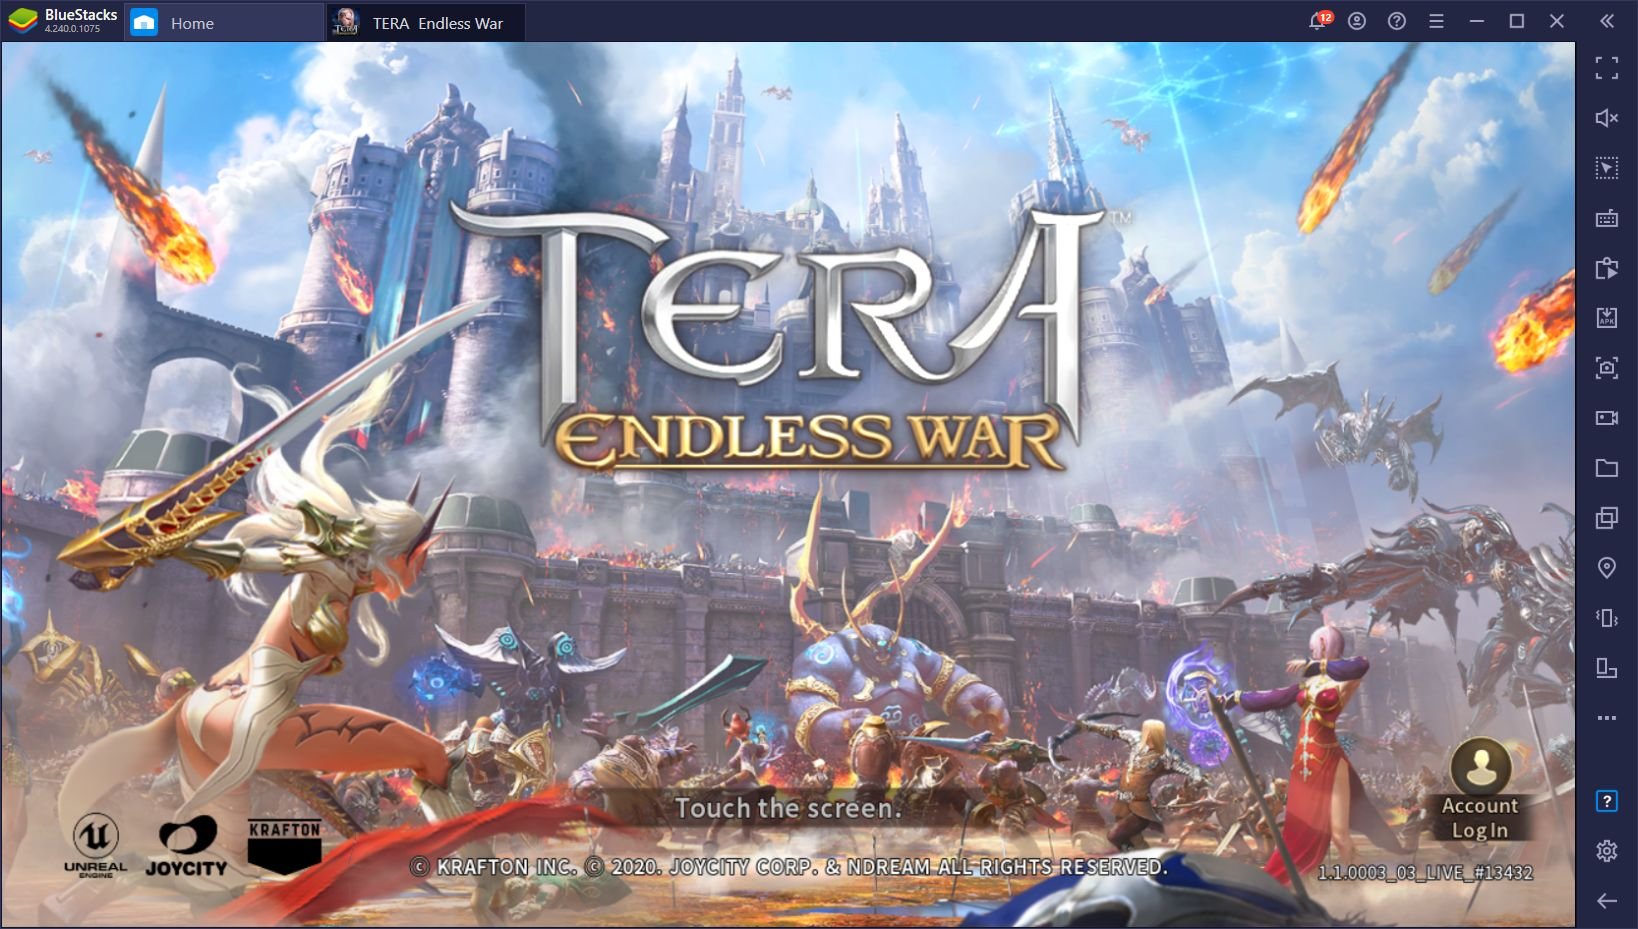 TERA: Endless War Beginner's Guide – The Best Tips and Tricks to Get Started in This Strategy War Game